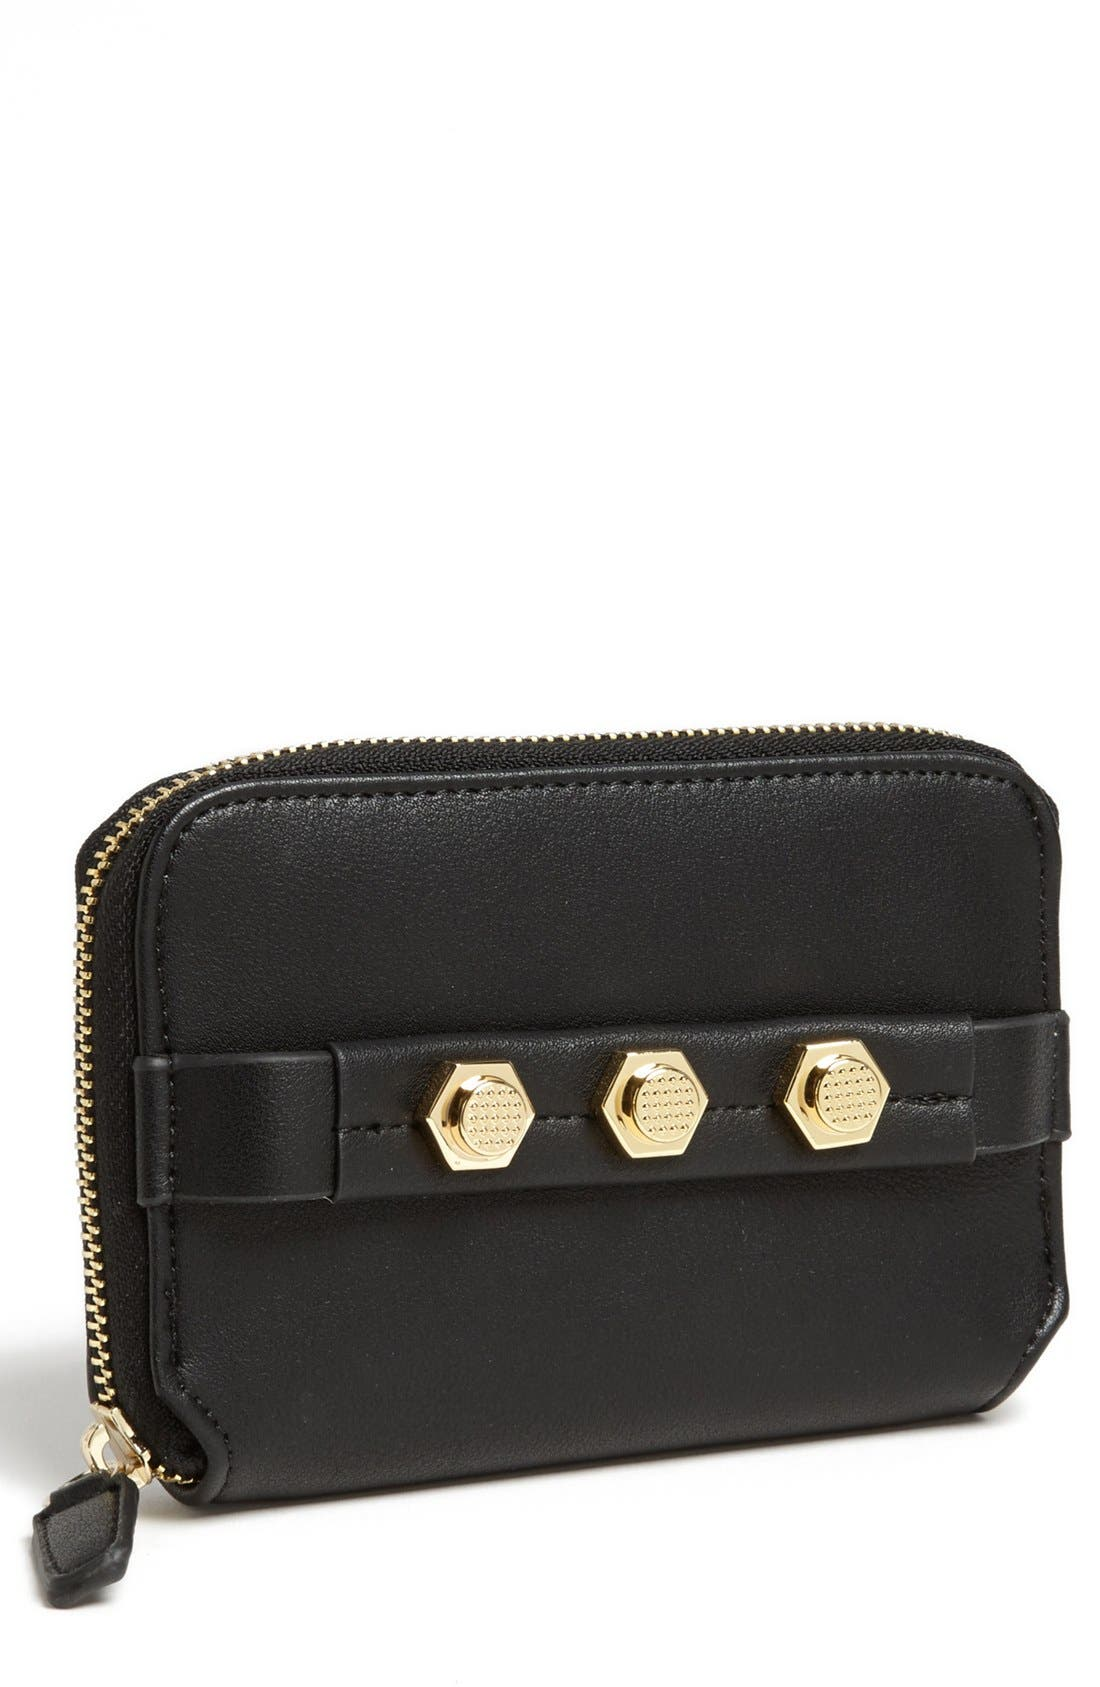 Alternate Image 1 Selected - Danielle Nicole 'Tina' Faux Leather Zip Around Wallet